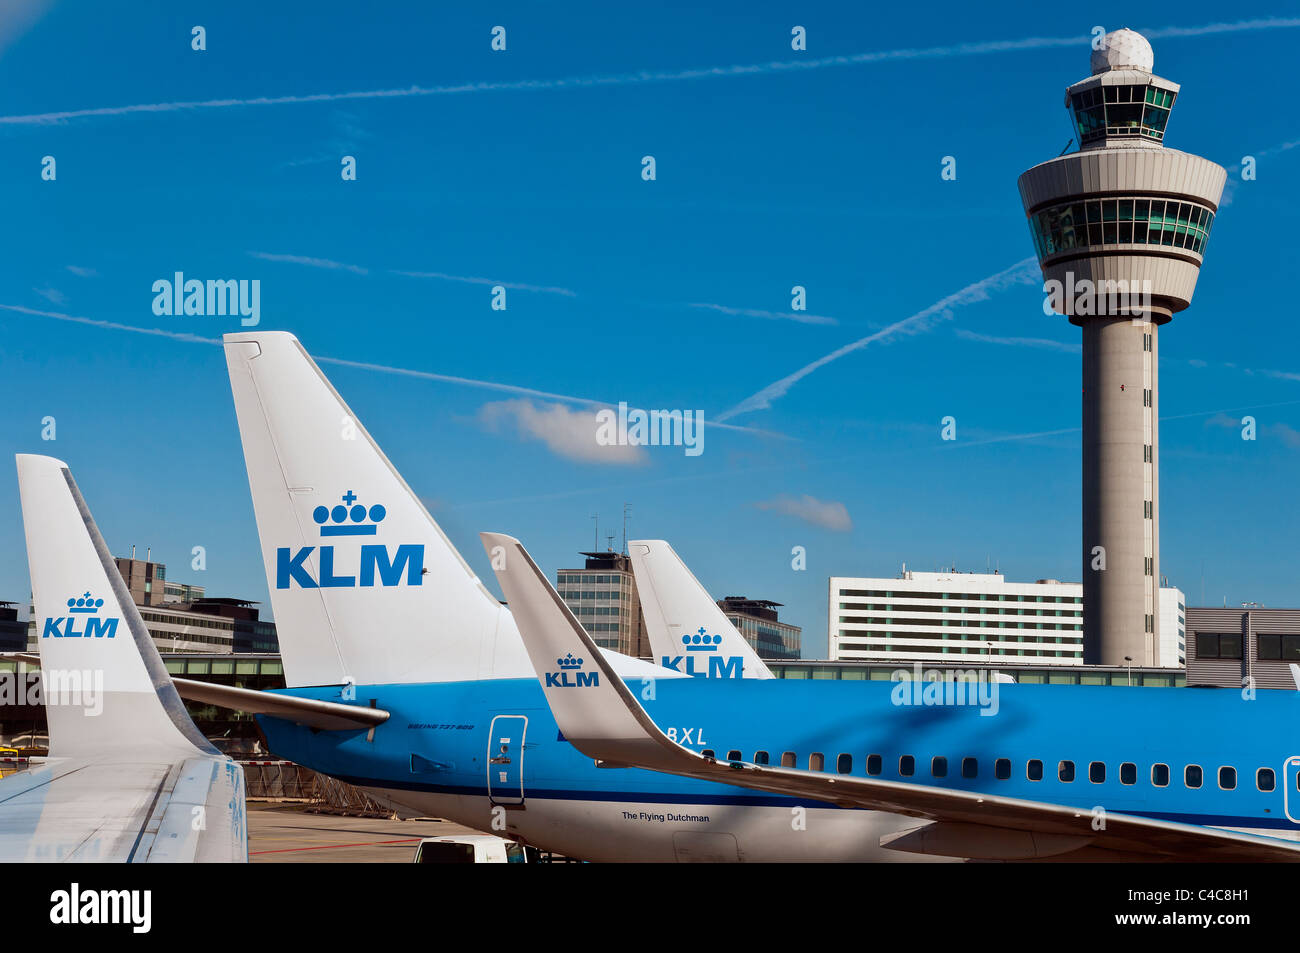 KLM Boeing 737 equipped with winglet, Amsterdam Schipol airport, The Netherlands - Stock Image